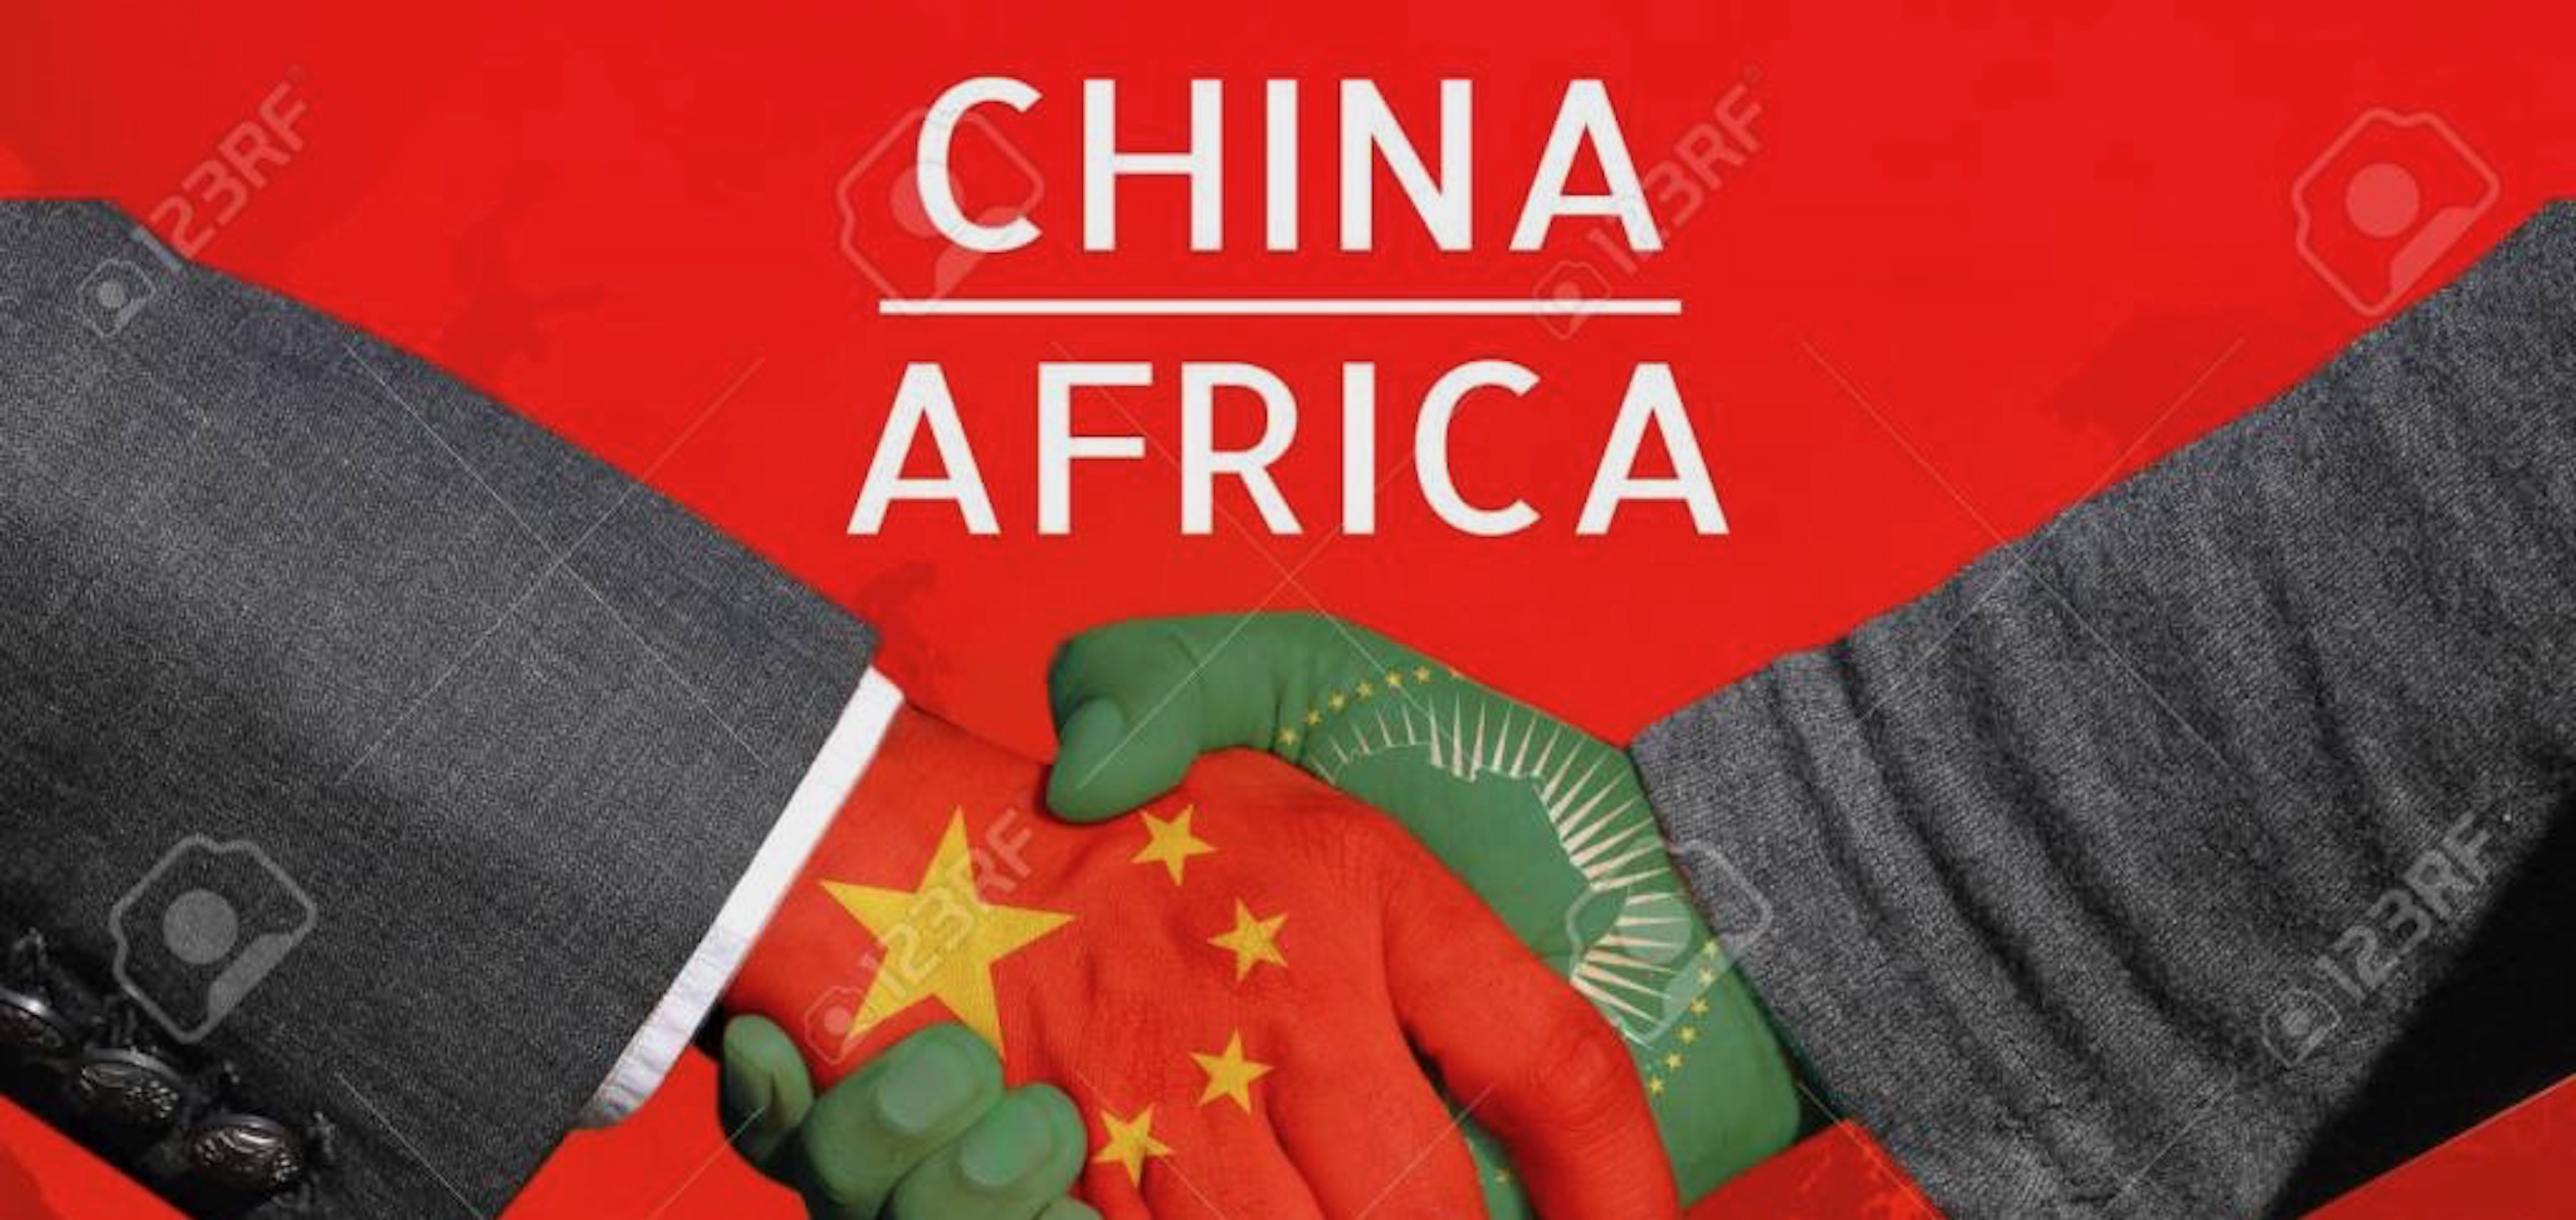 The China and Africa Connection U.S. Imperialism Does Not Want You to Know About